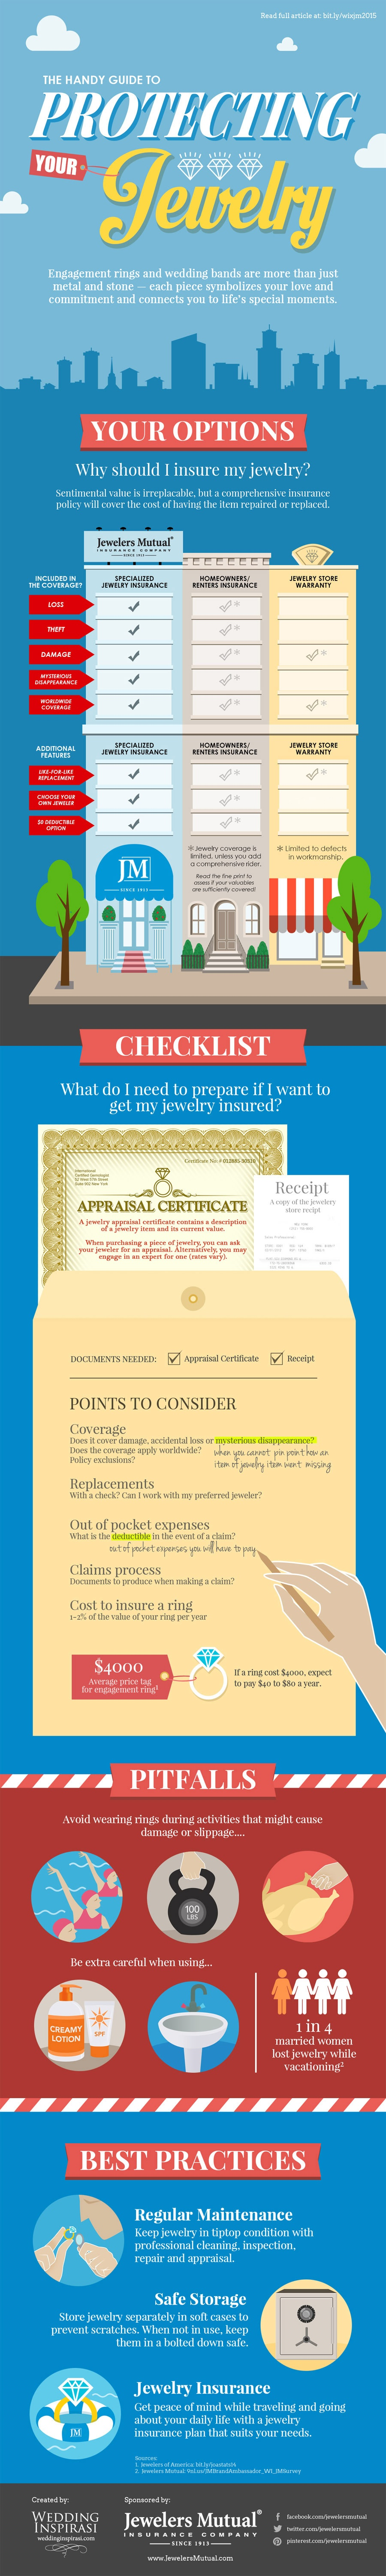 Wedding Inspirasi Handy Guide to Protecting Jewelry Infographic